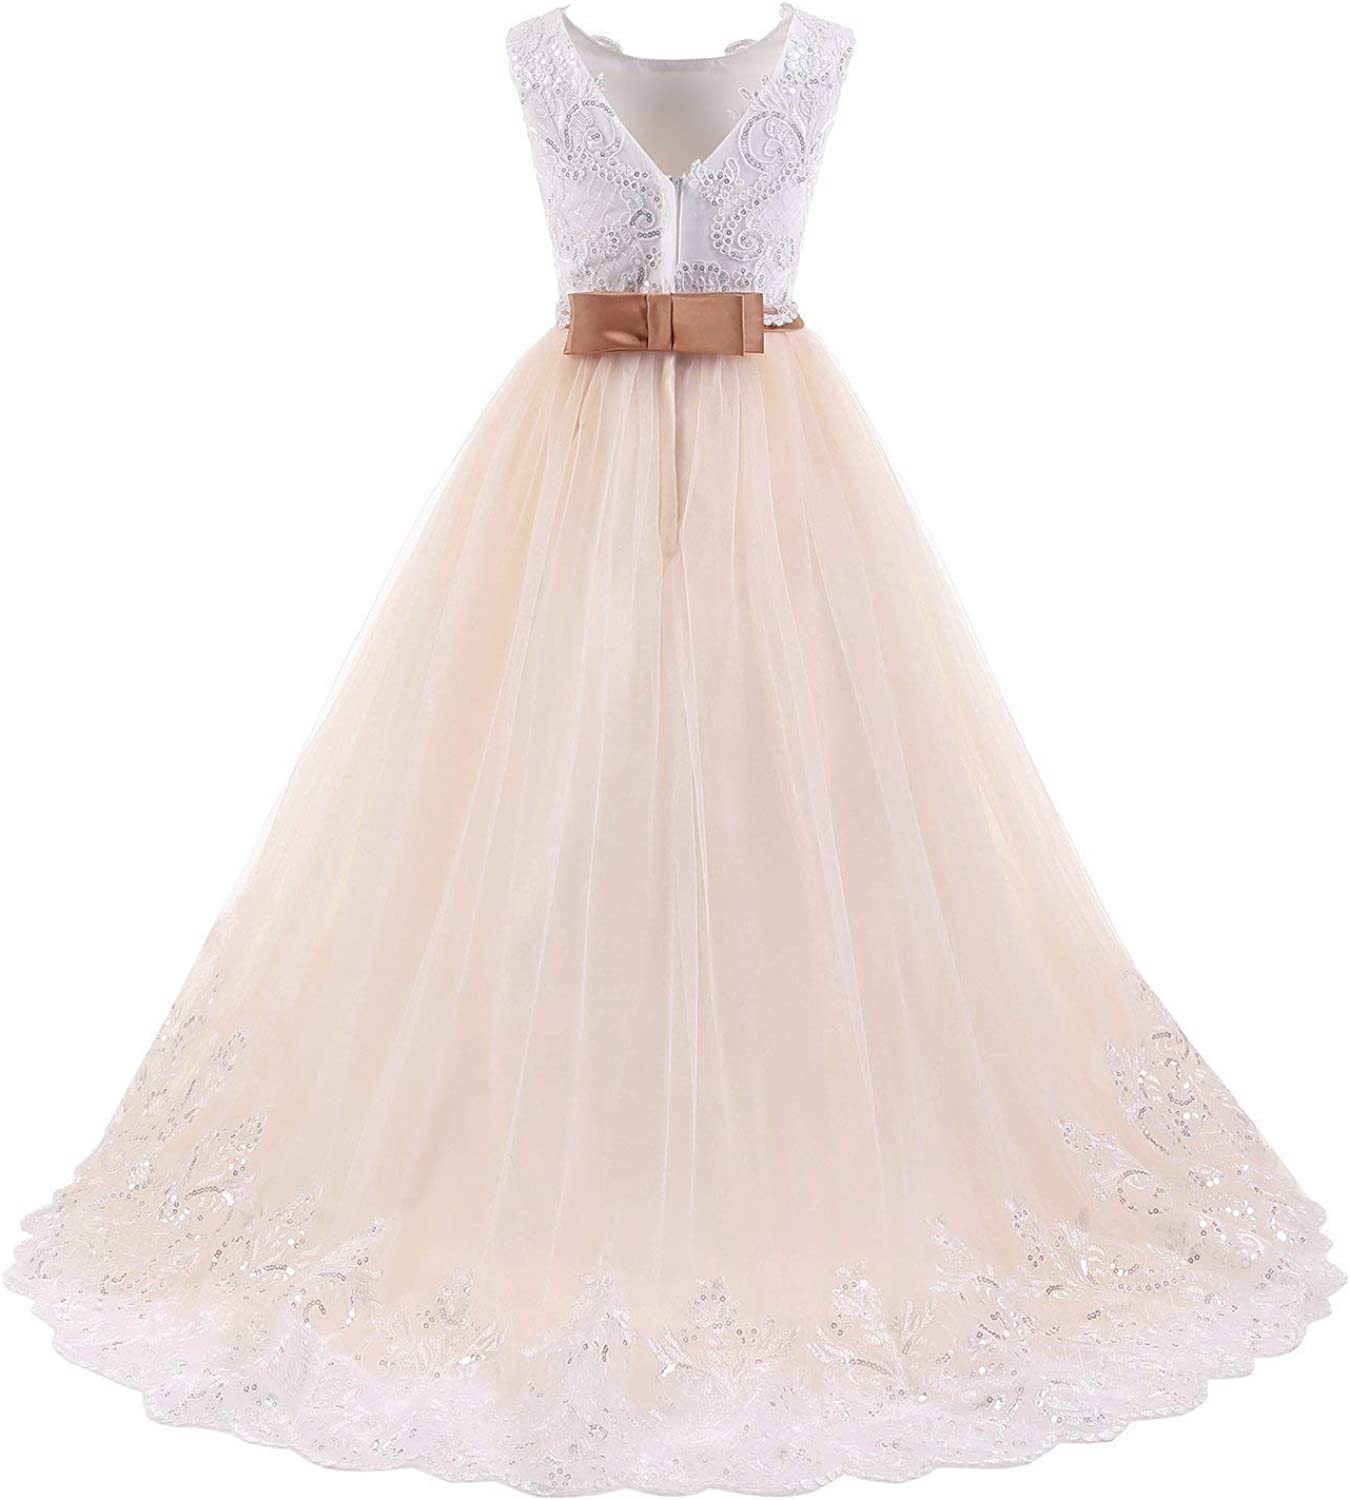 luolandi Ivory Long Lace Flower Girl Dresses Champagne Less Party Dress